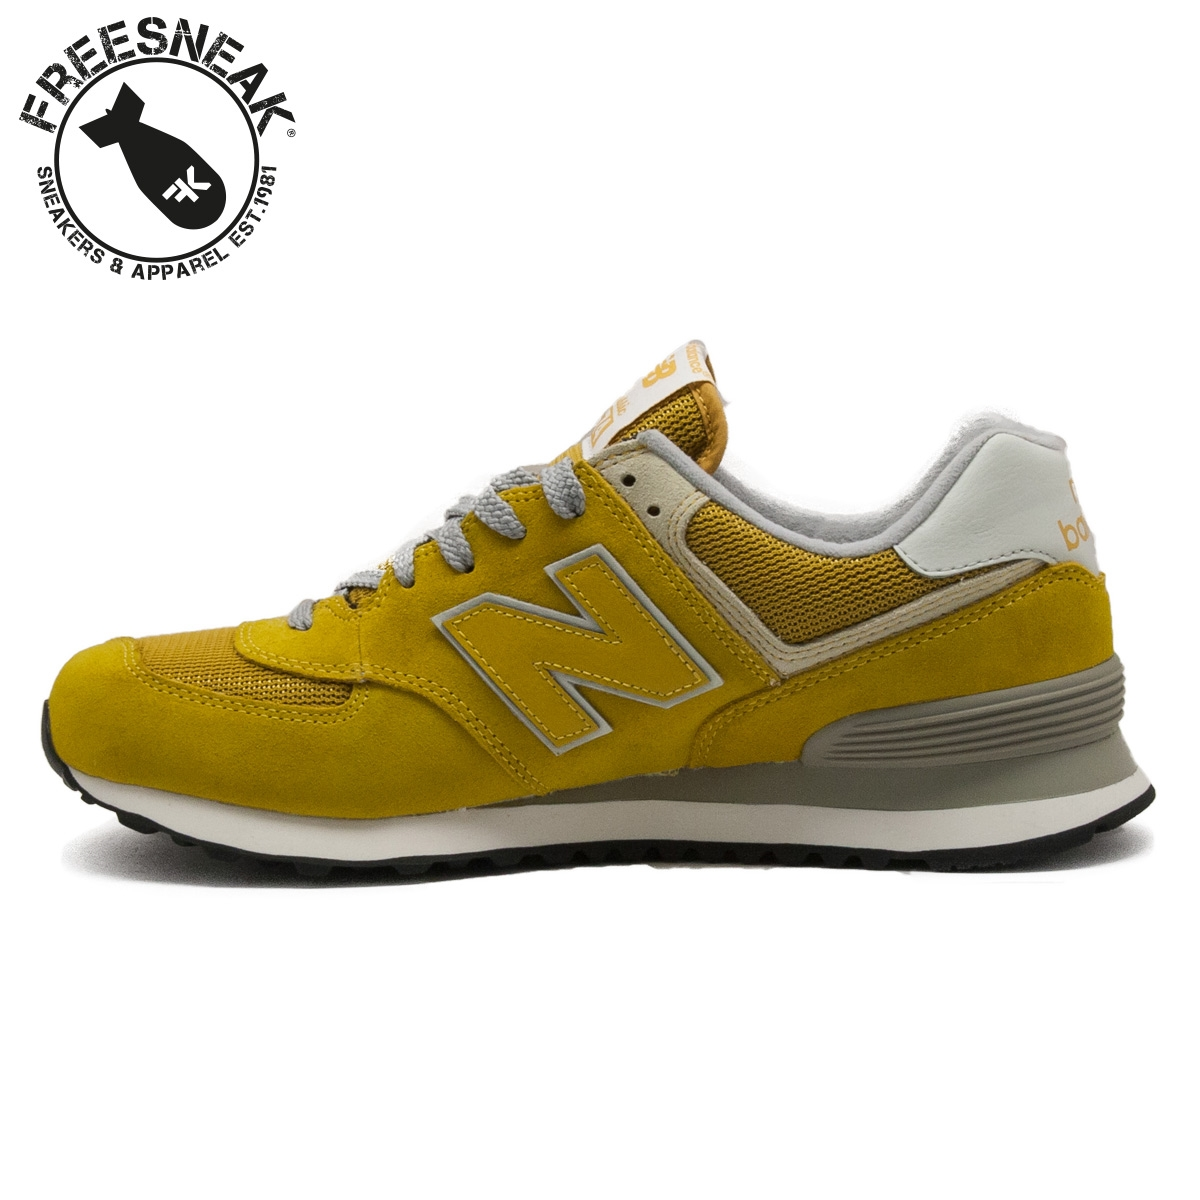 timeless design e7d98 035b1 NEW BALANCE 574 CLASSIC YELLOW ML574VMU